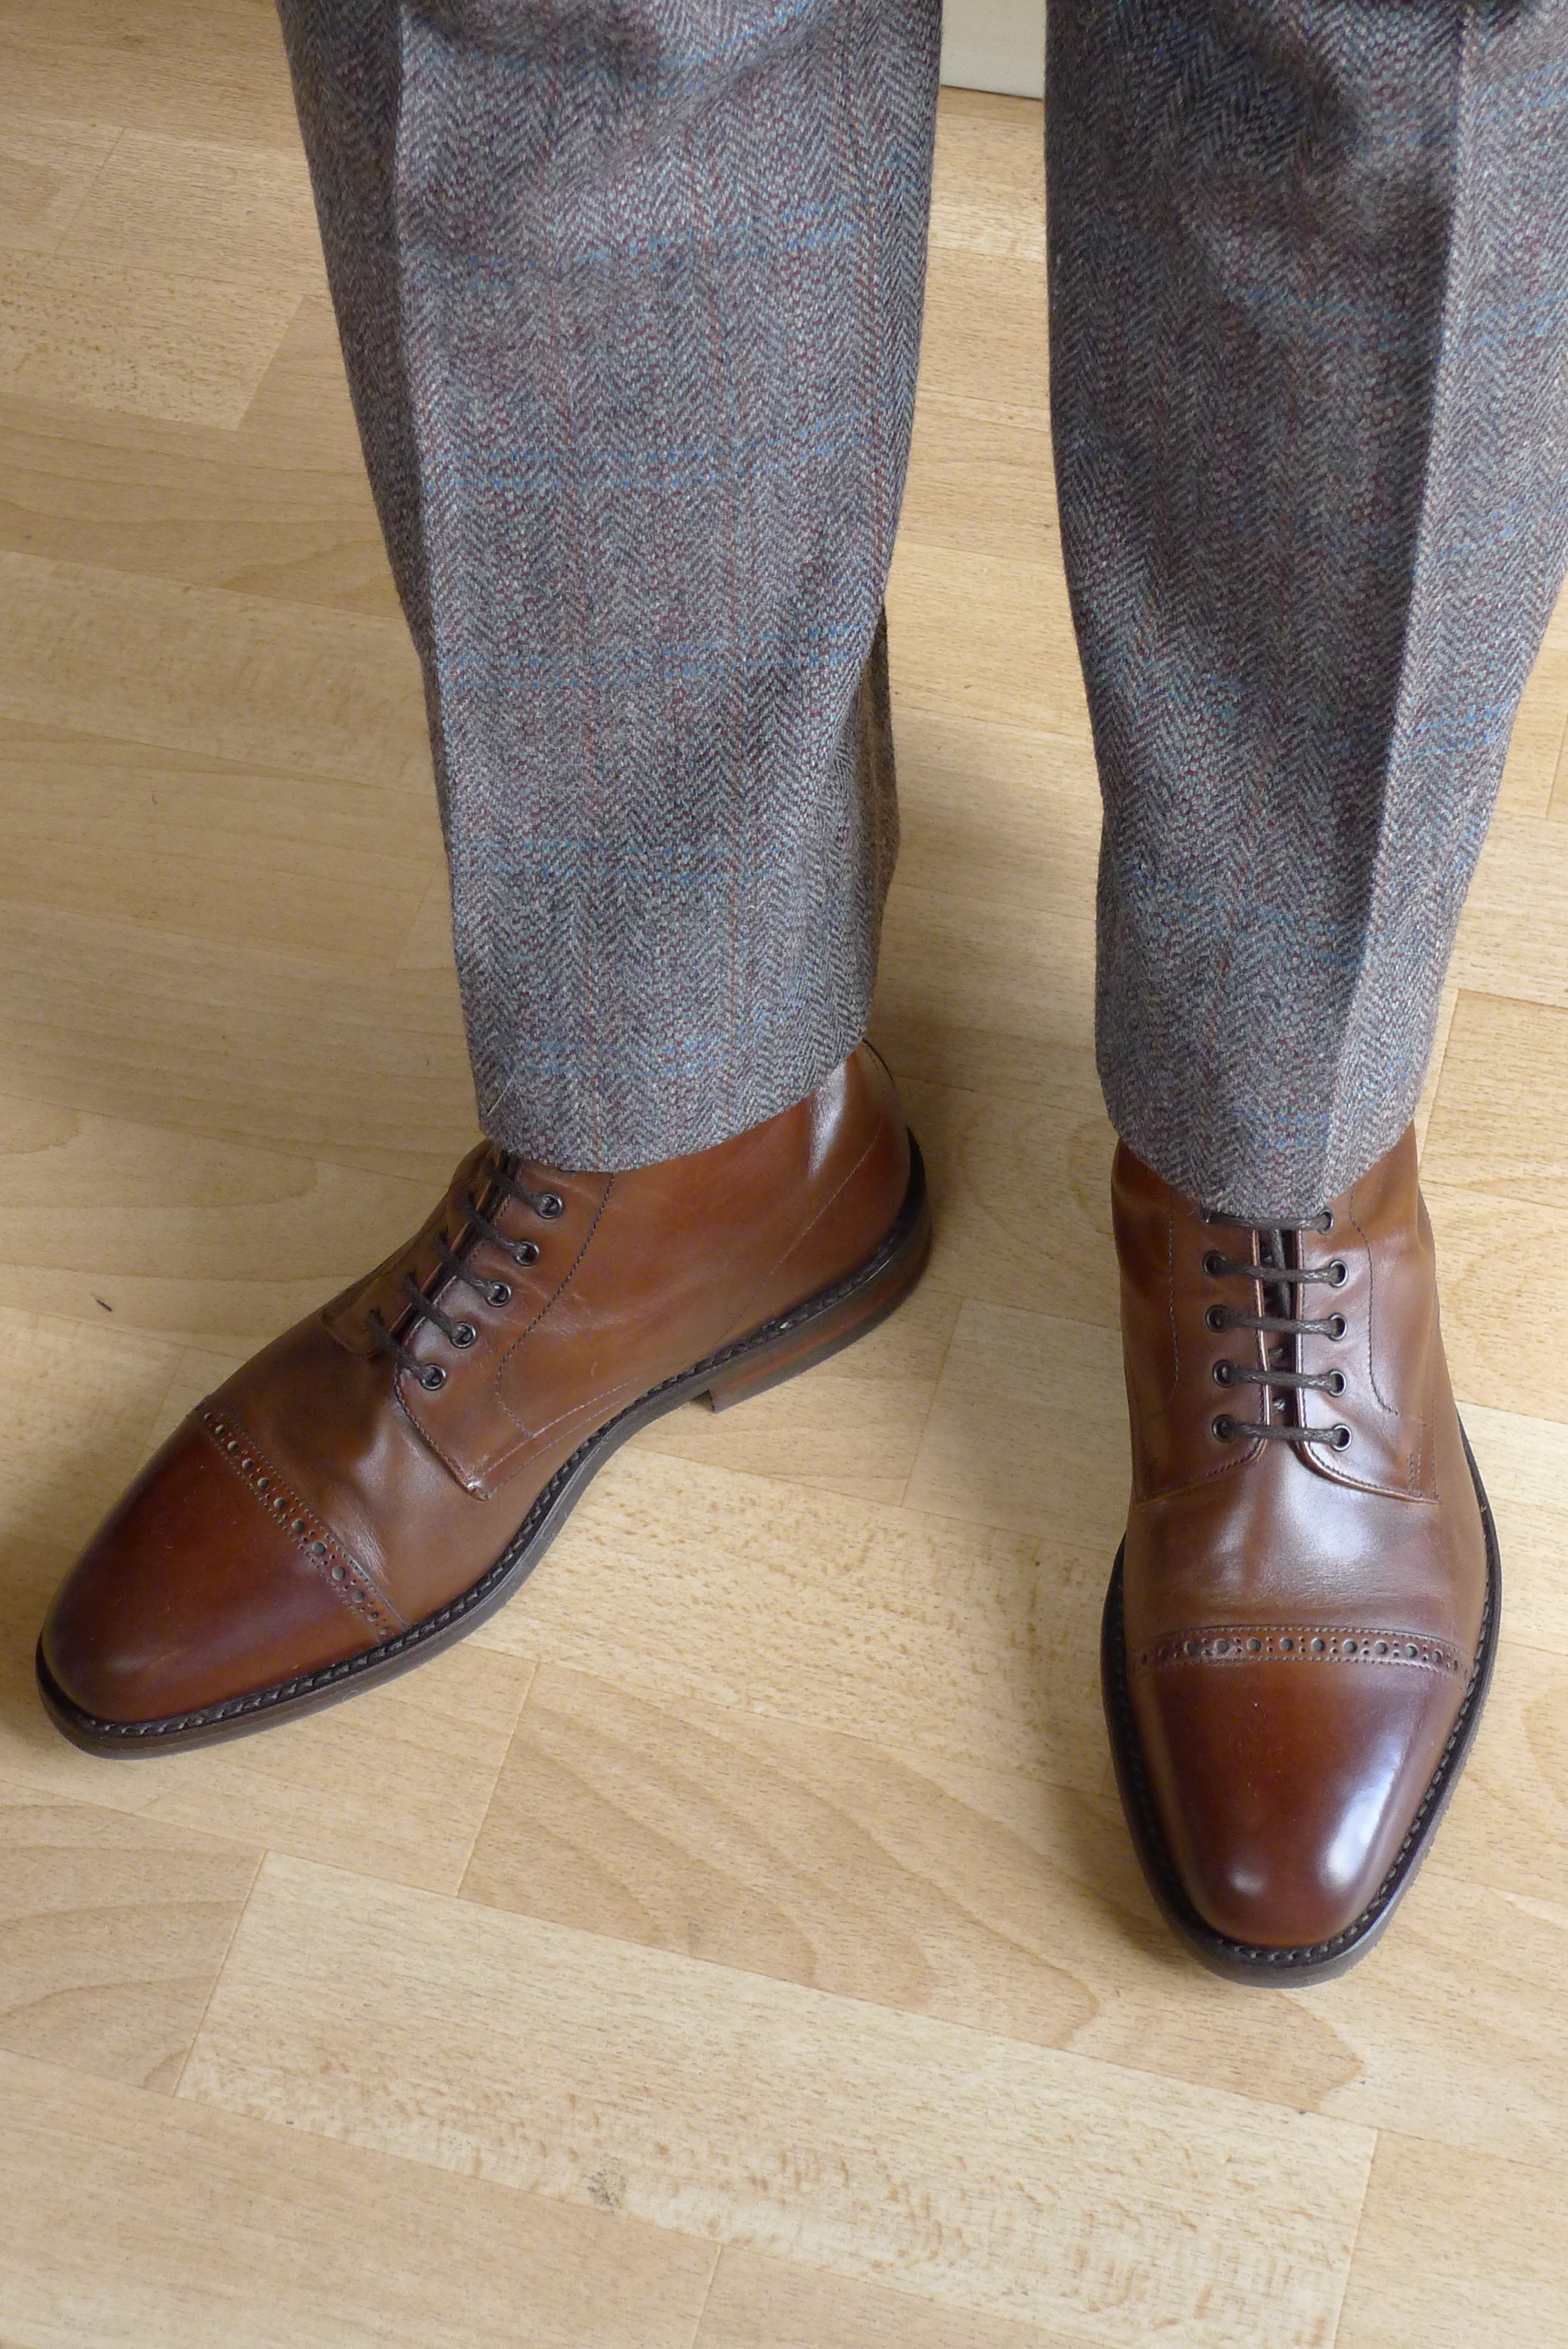 b8a64254332 LOAKE APPRECIATION THREAD | Page 71 | Styleforum